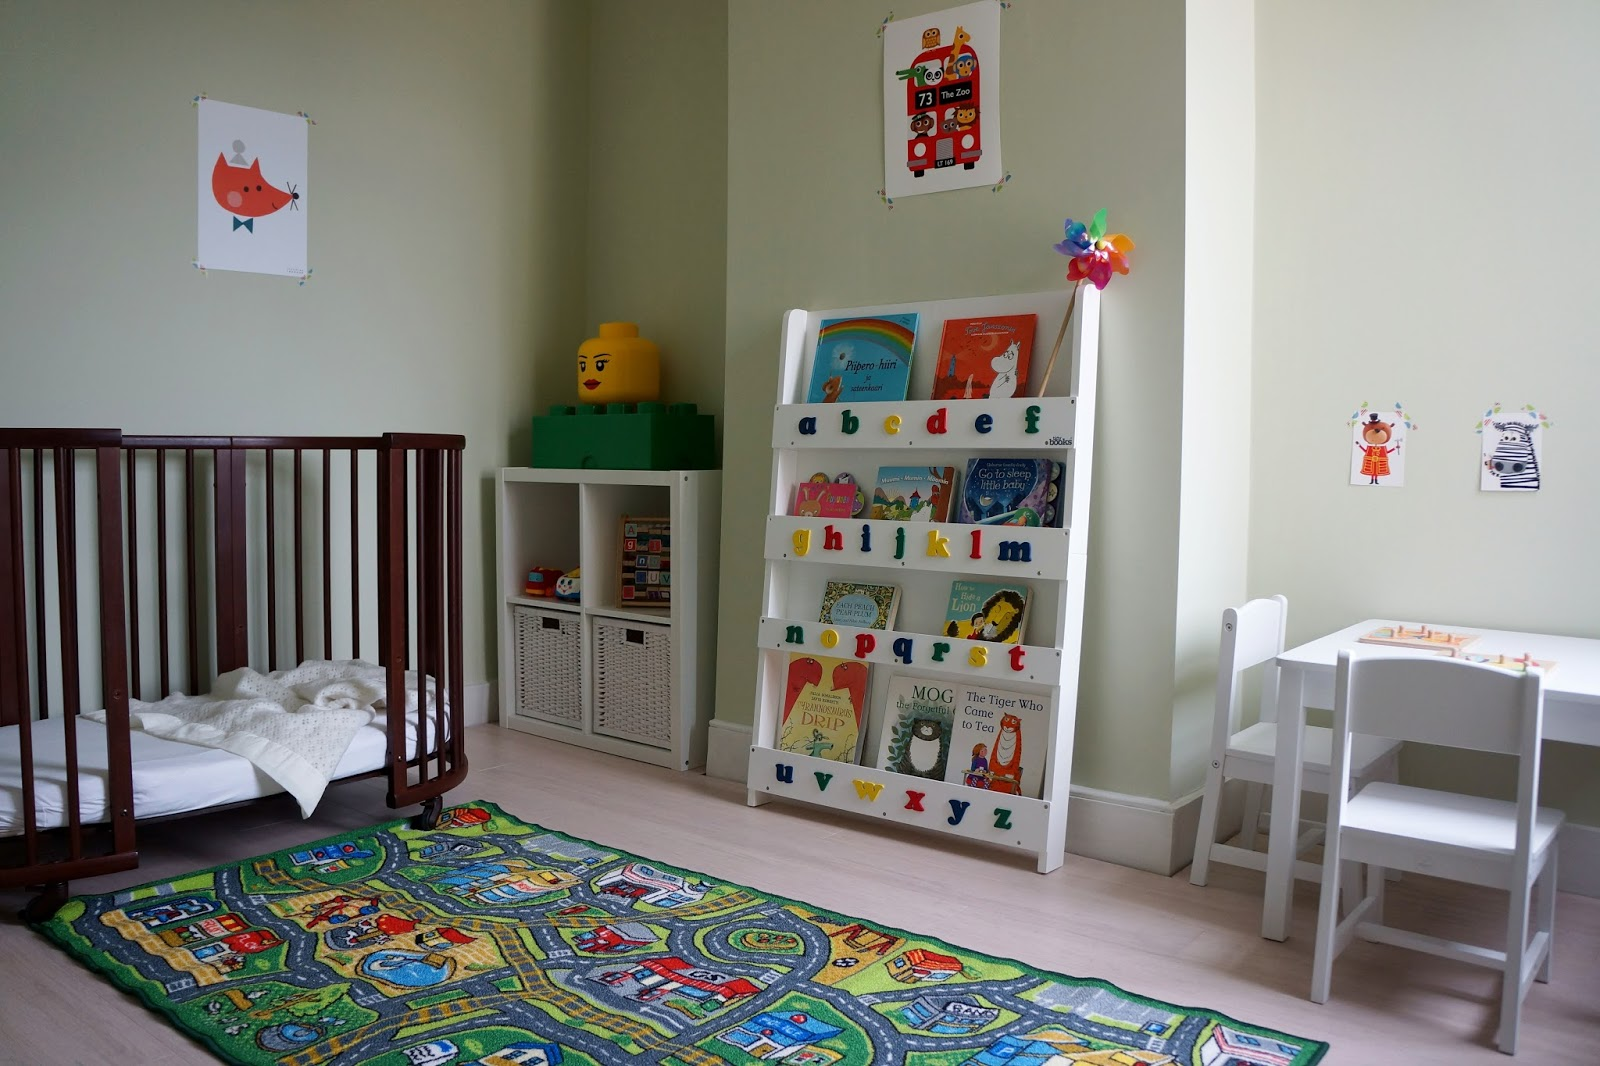 Toddler Bedroom Decorating Ideas Introducing Our Fun And Toddler Friendly Baby Bedroom